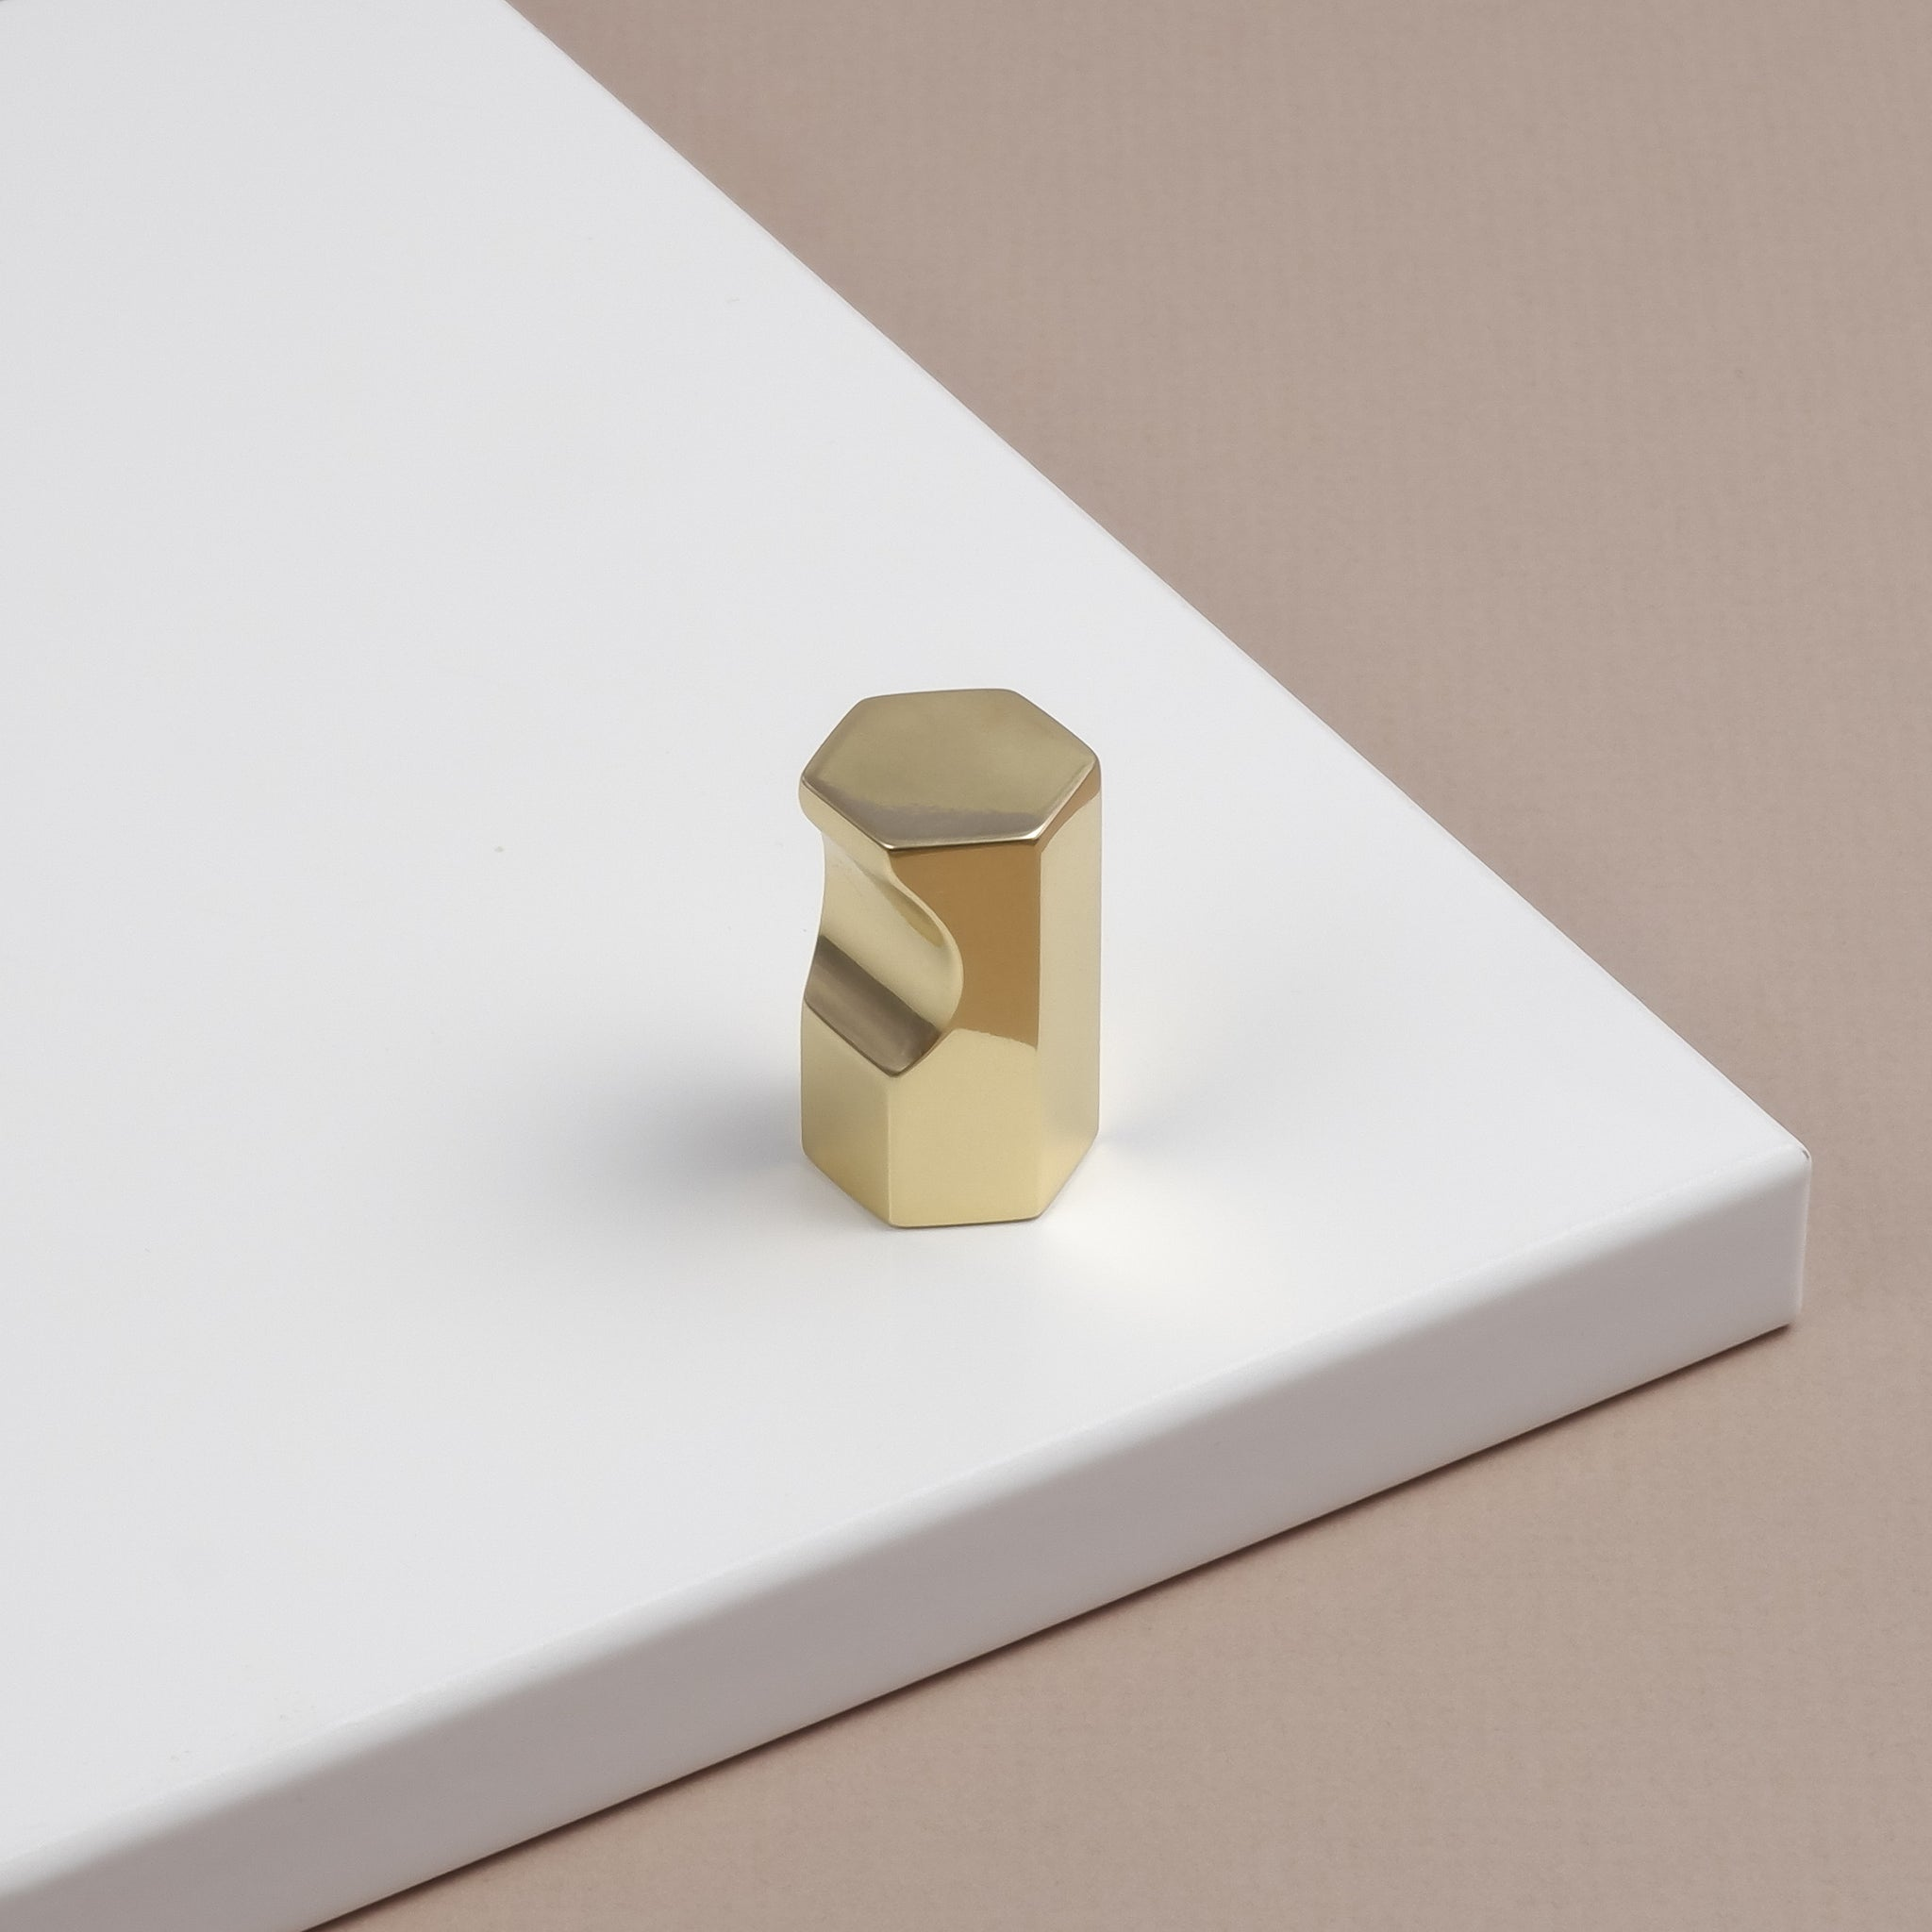 Hexagonal polished brass cupboard handle